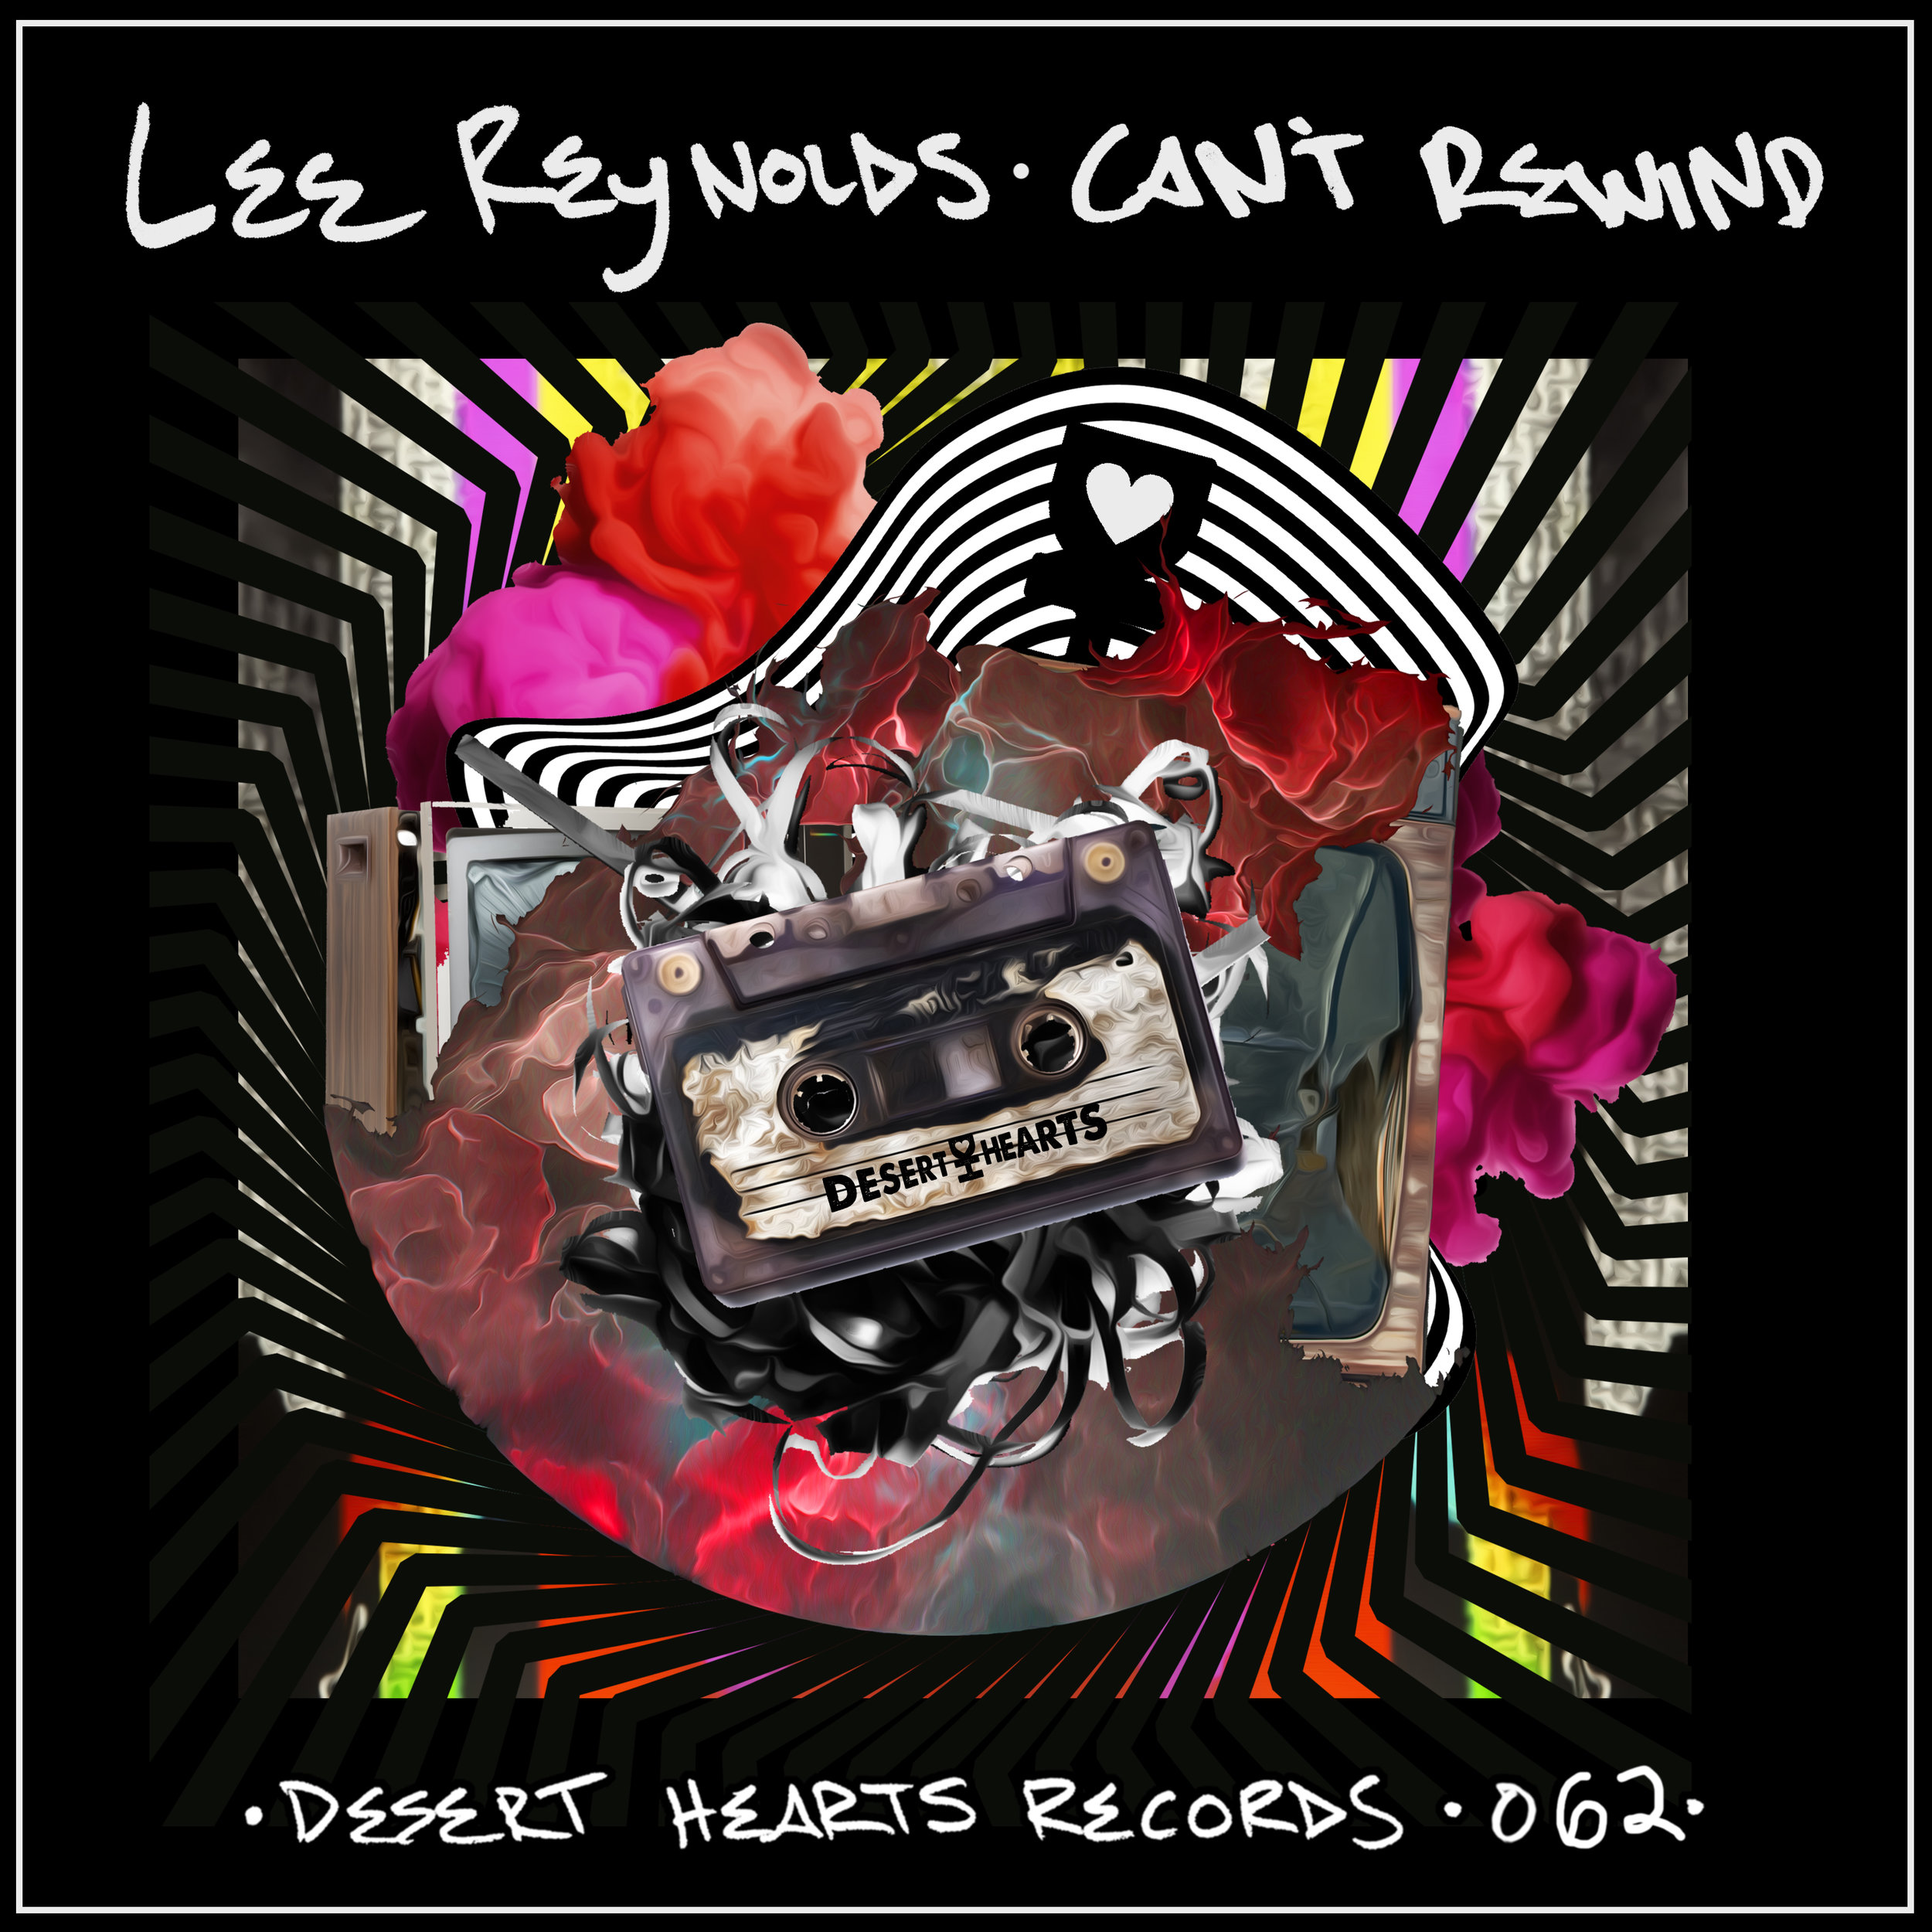 [DH062] - Lee Reynolds - Can't Rewind EP.jpg